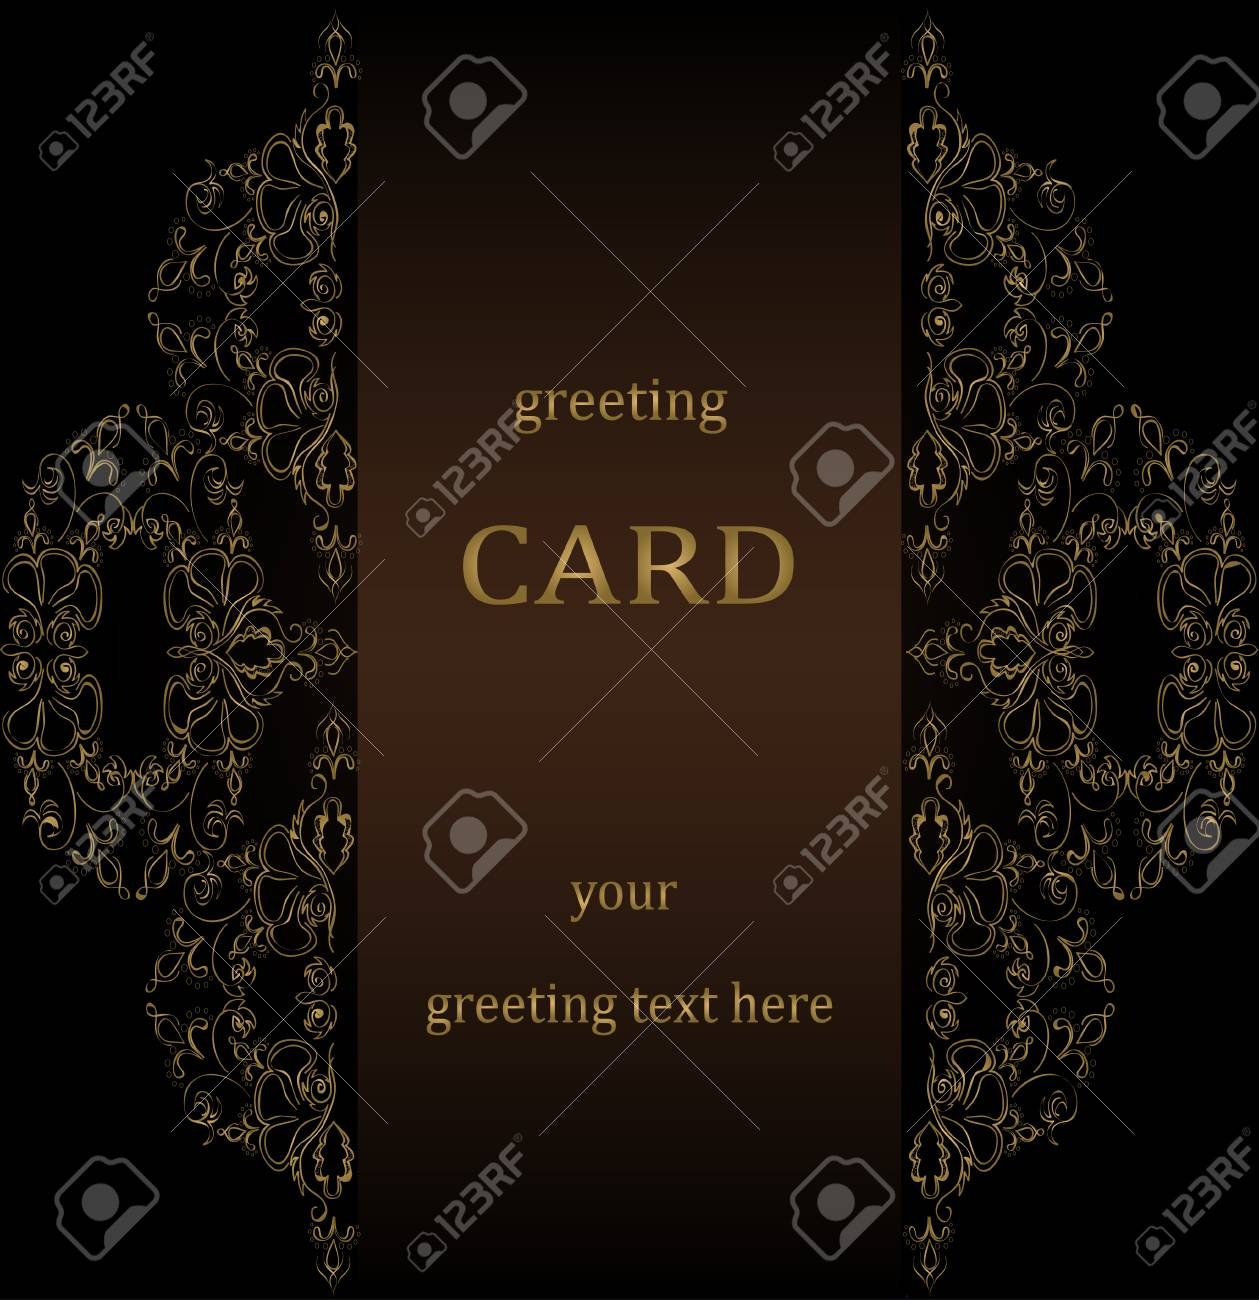 Vintage Greeting Cards In Victorian Style Vector Royalty Free